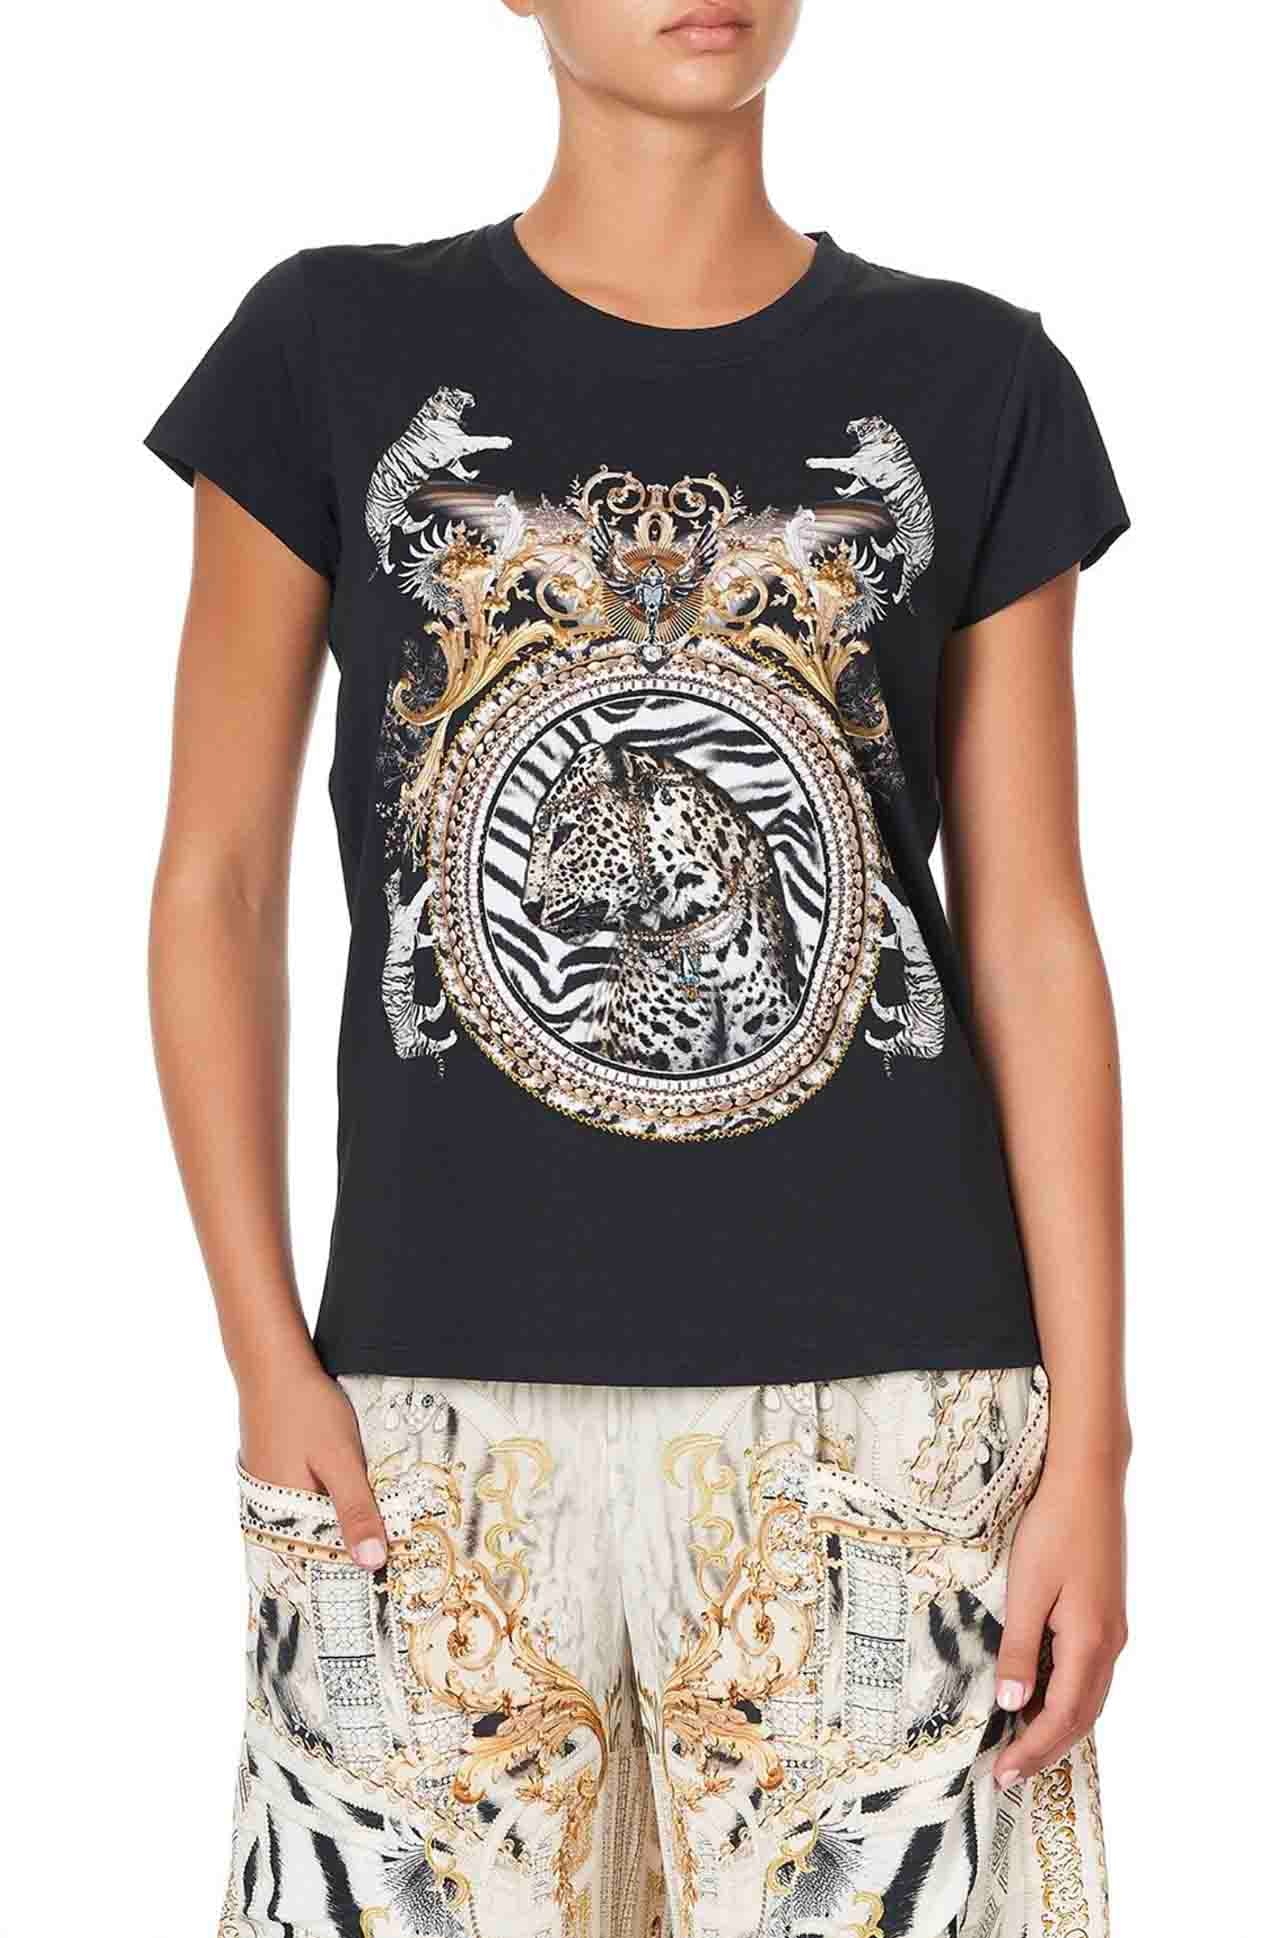 Camilla - Gates Of Glory Slim Fit Round Neck T-Shirt